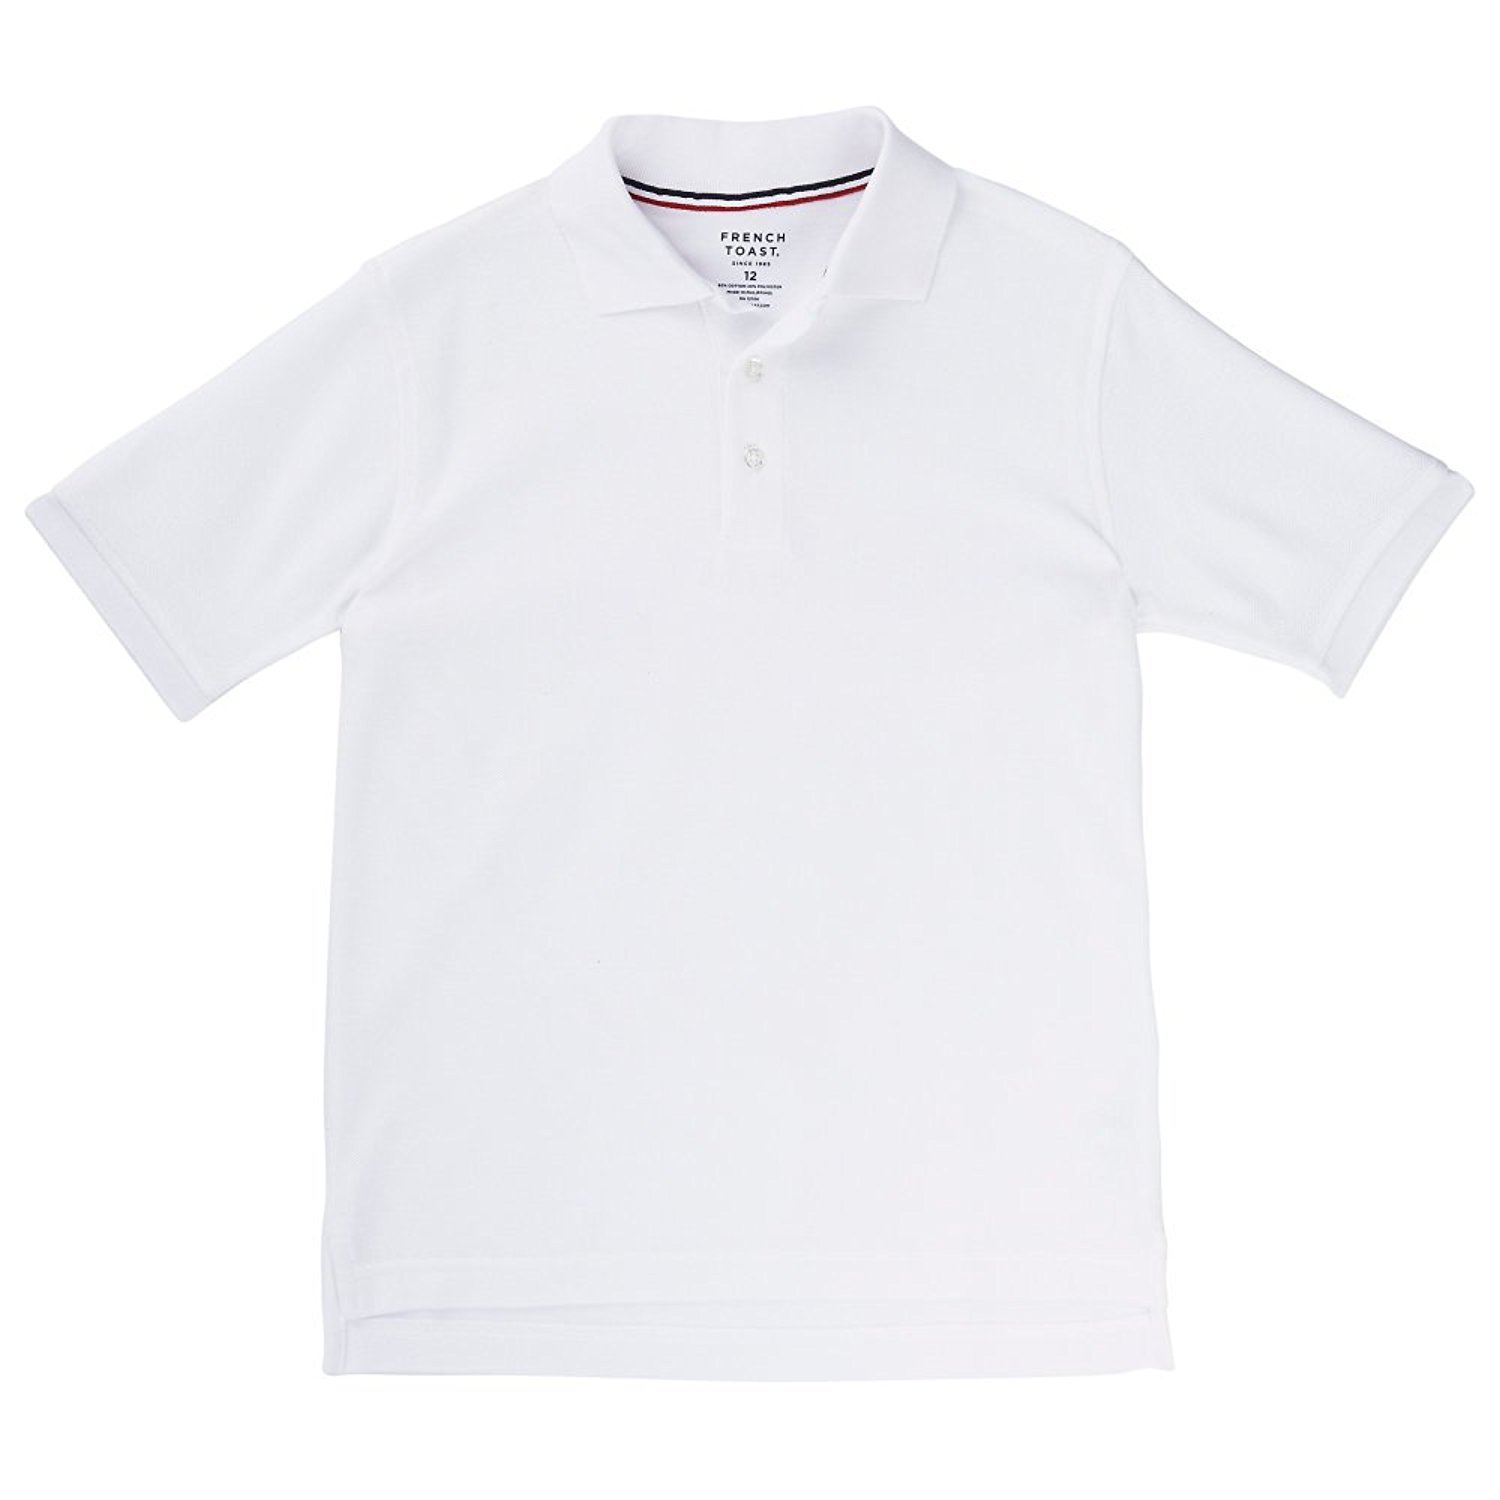 French Toast S/S Pique Polo - white, 3t